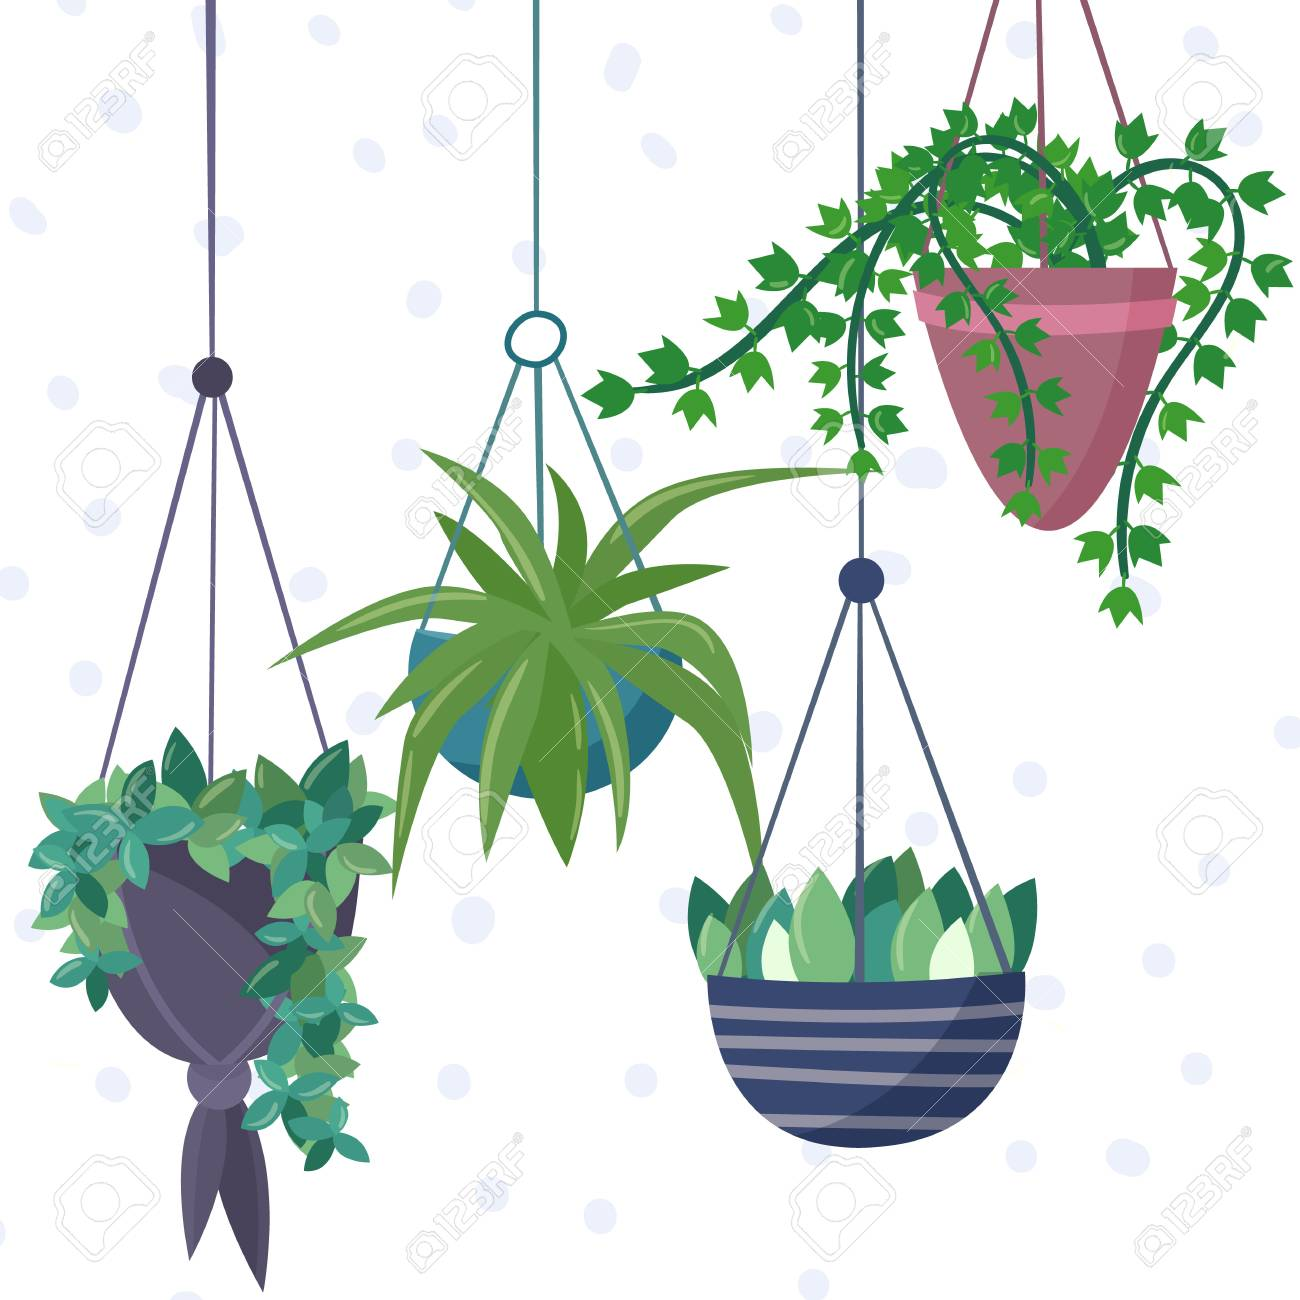 Hanging House Plants And Flowers In Pots Royalty Free Cliparts Vectors And Stock Illustration Image 98517429